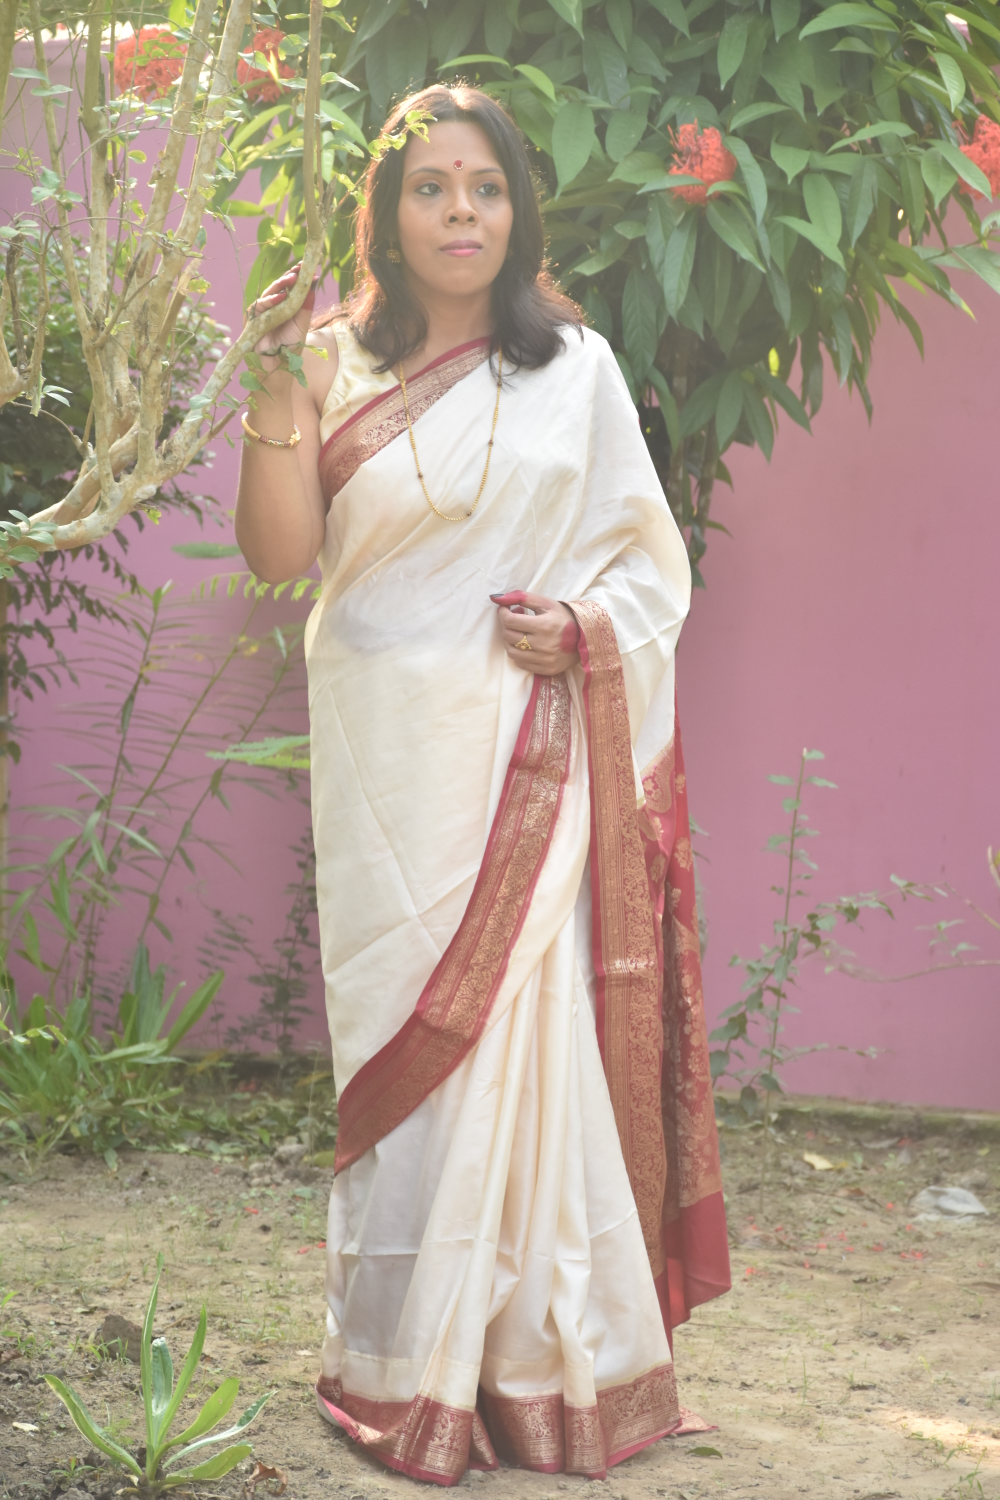 fashionistaspeaks-DURGA PUJA IS ONE OF THOSE OCCASIONS THAT GIVES ME AN OPPORTUNITY TO WEAR SAREE